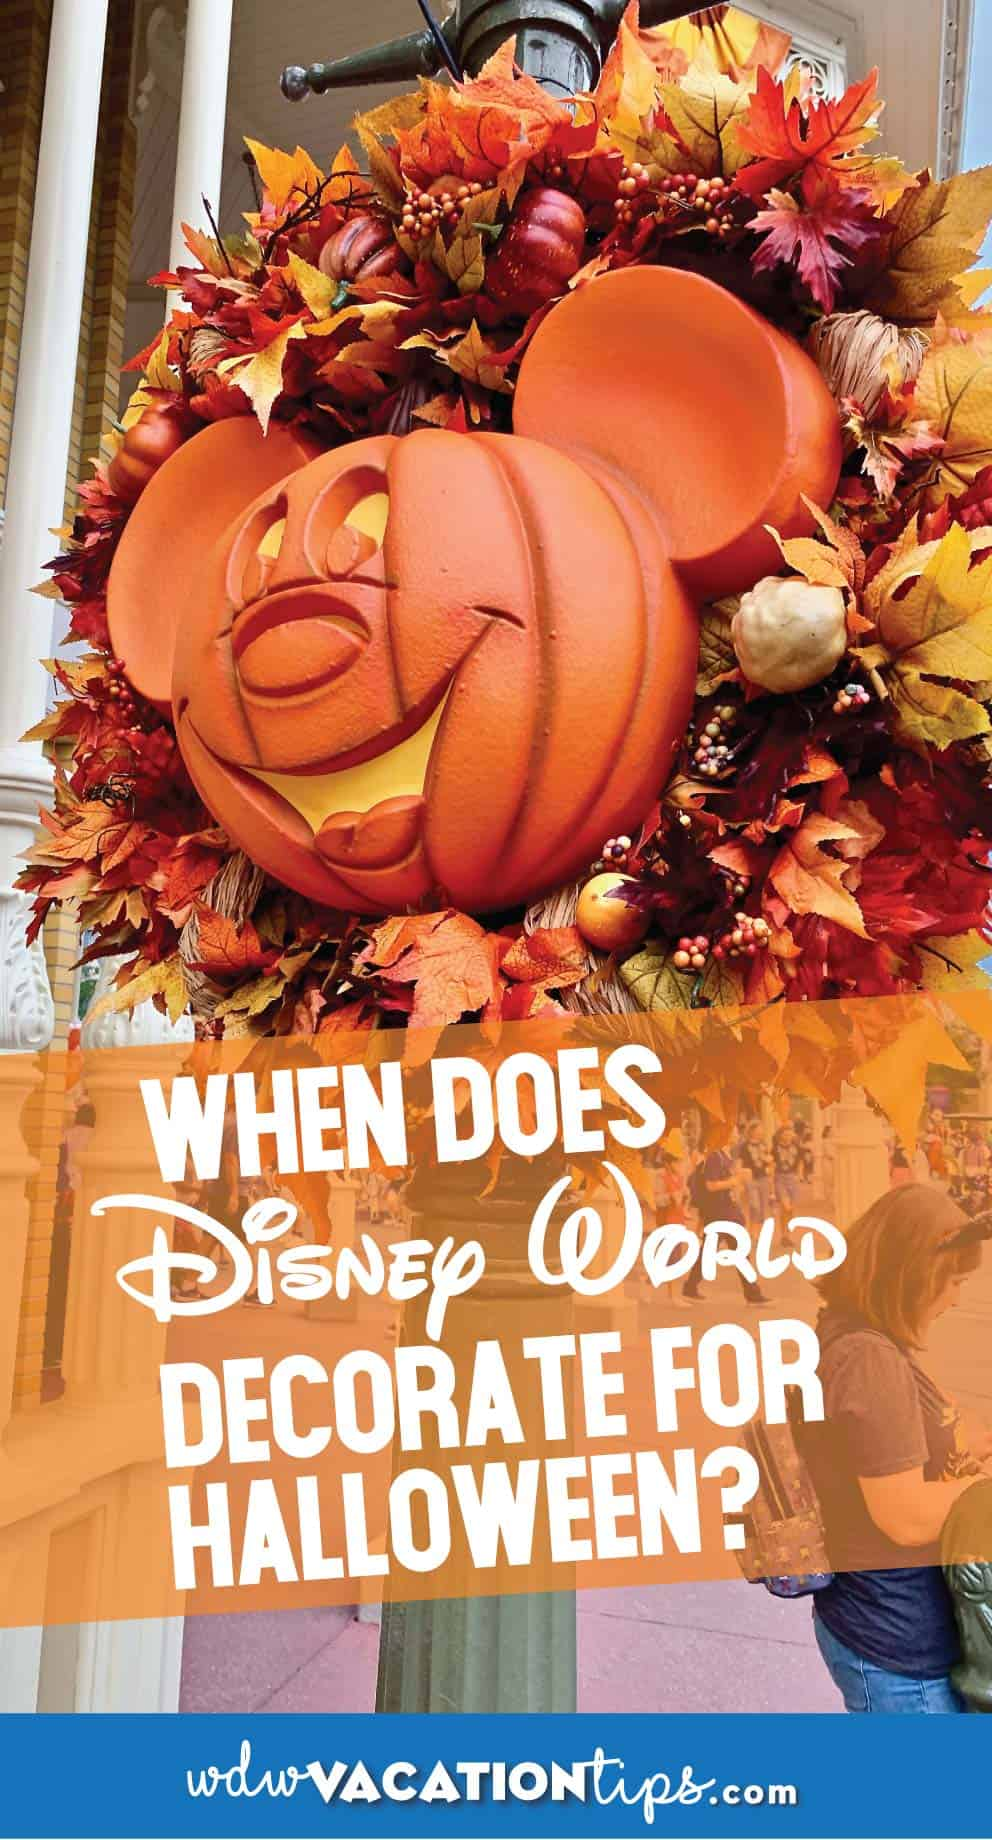 Halloween Decorations at Disney World are Coming! 1